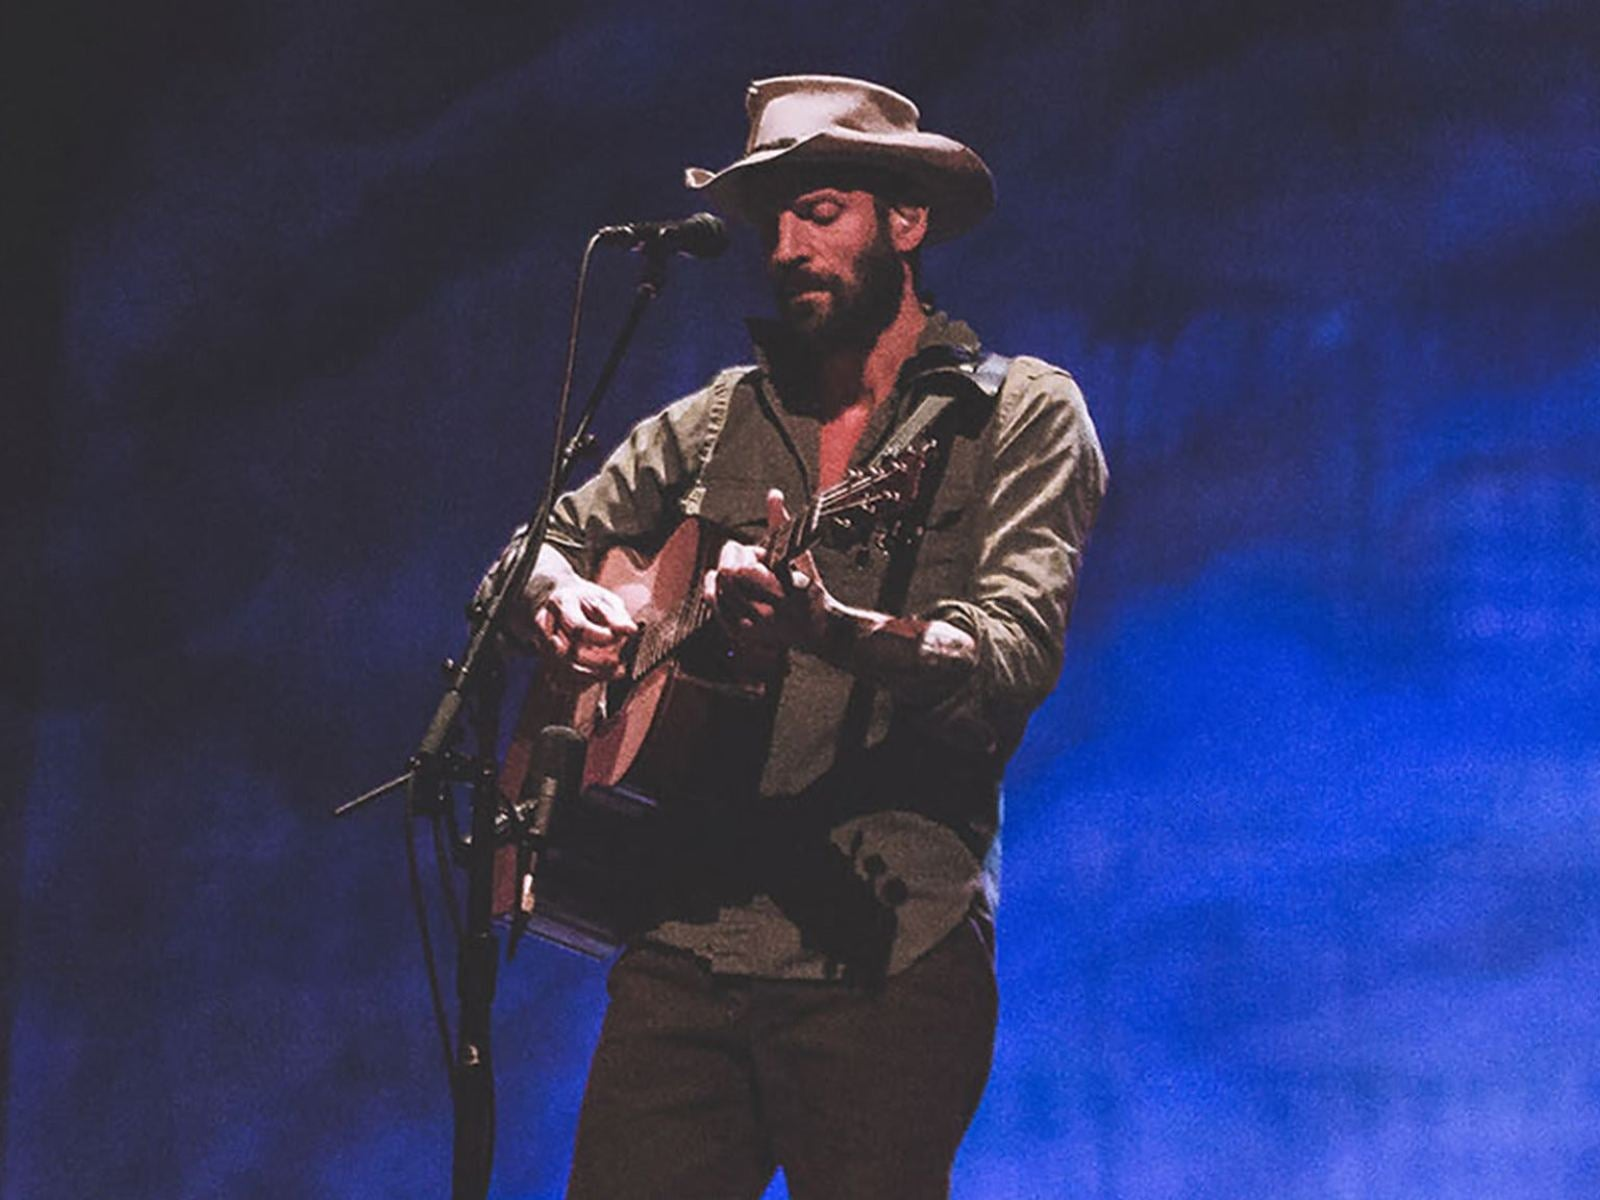 Main image for event titled Ray LaMontagne